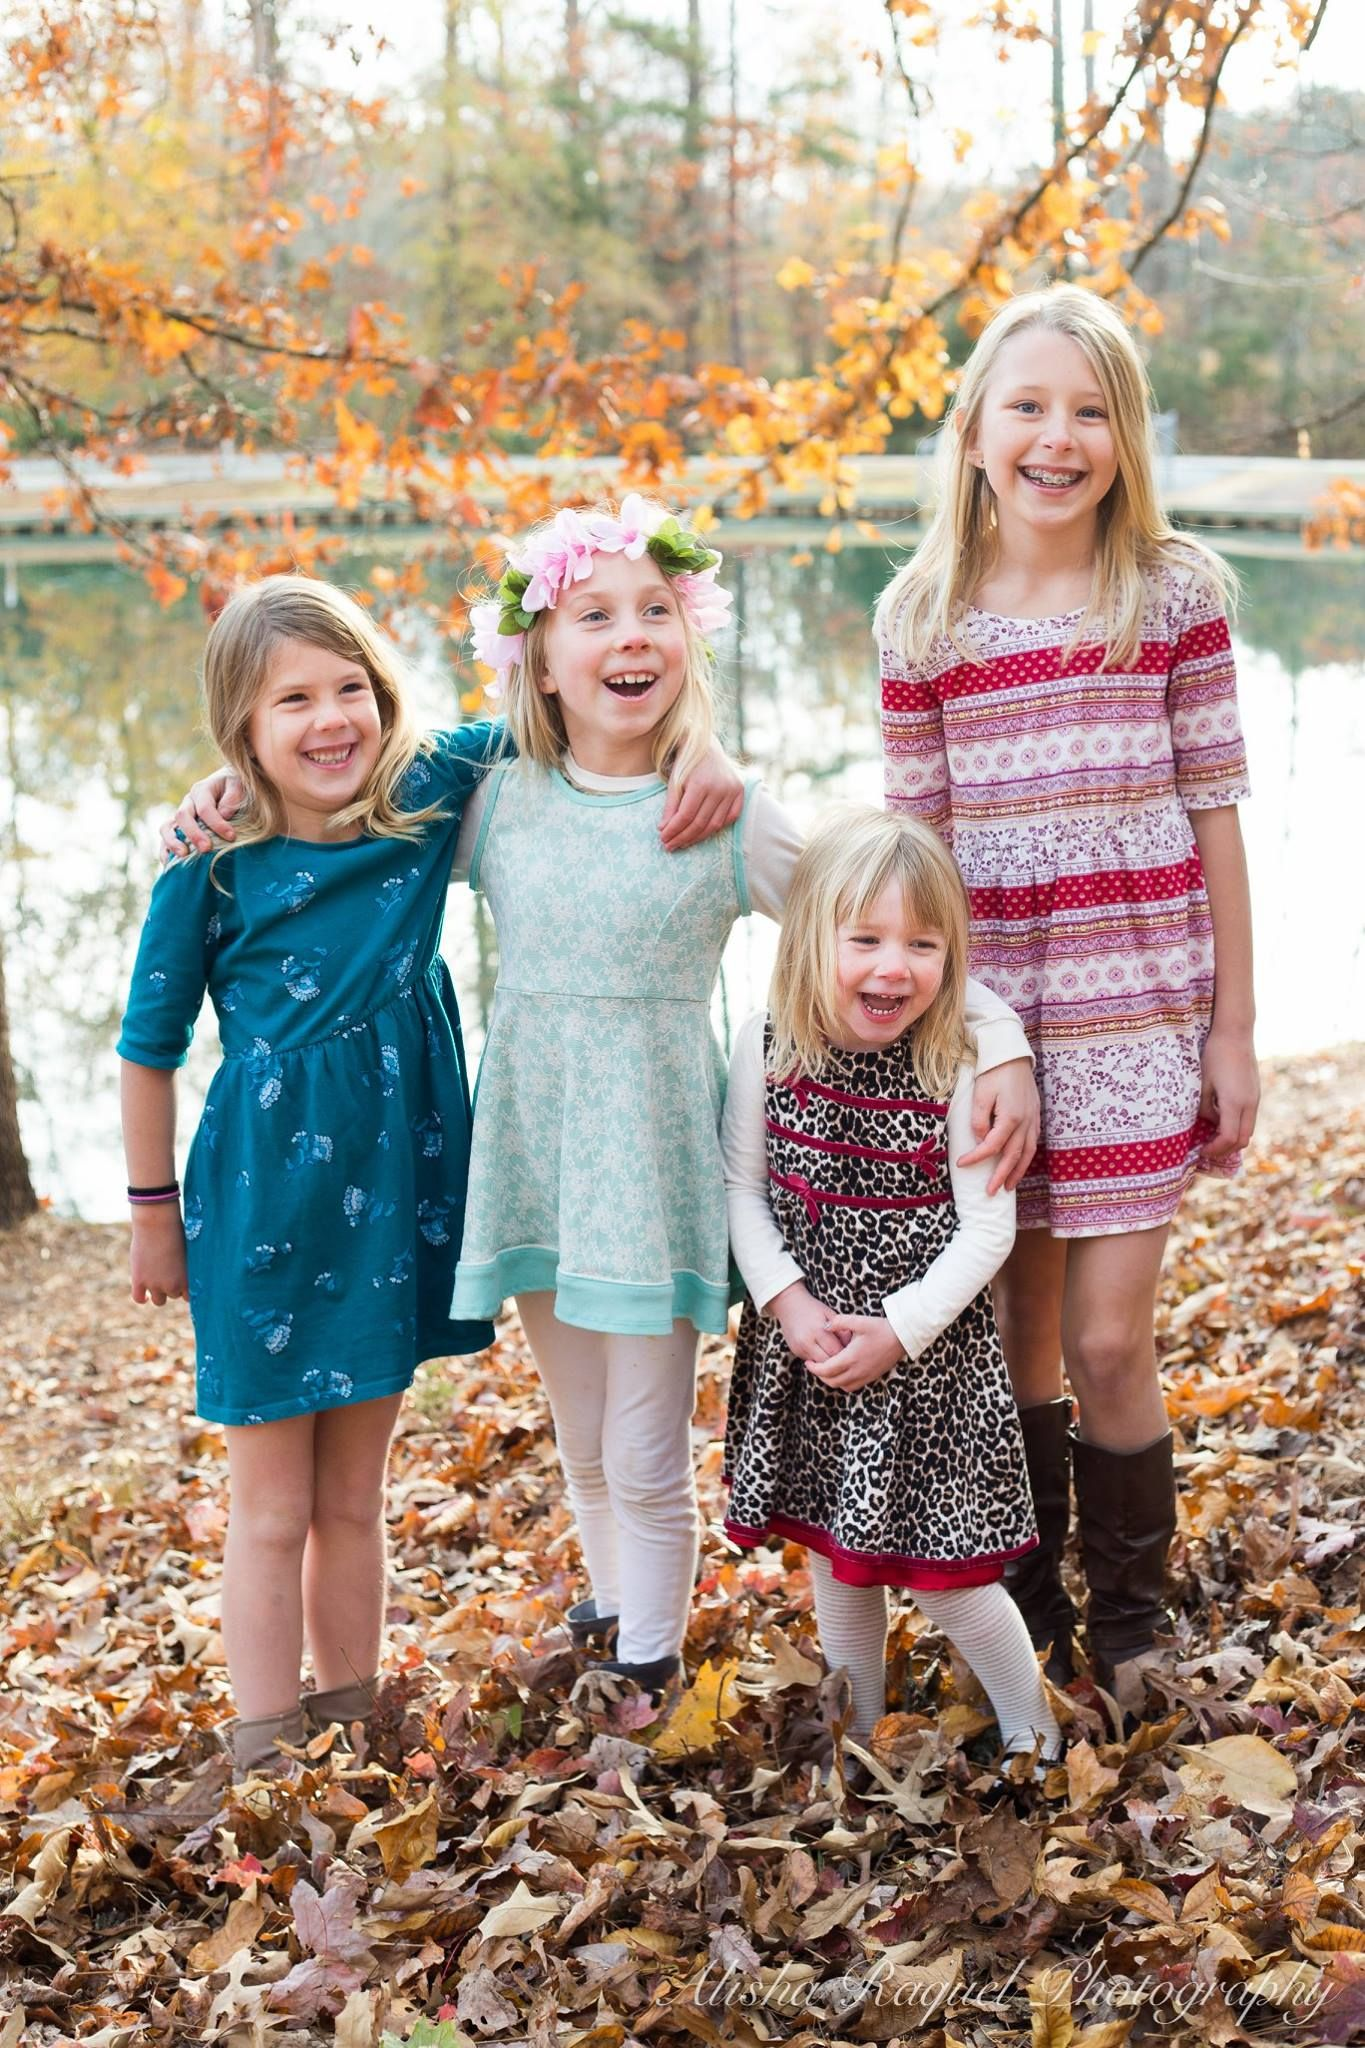 Fall Family Photo Inspiration Cousin Family Photo Fall Flower Crown